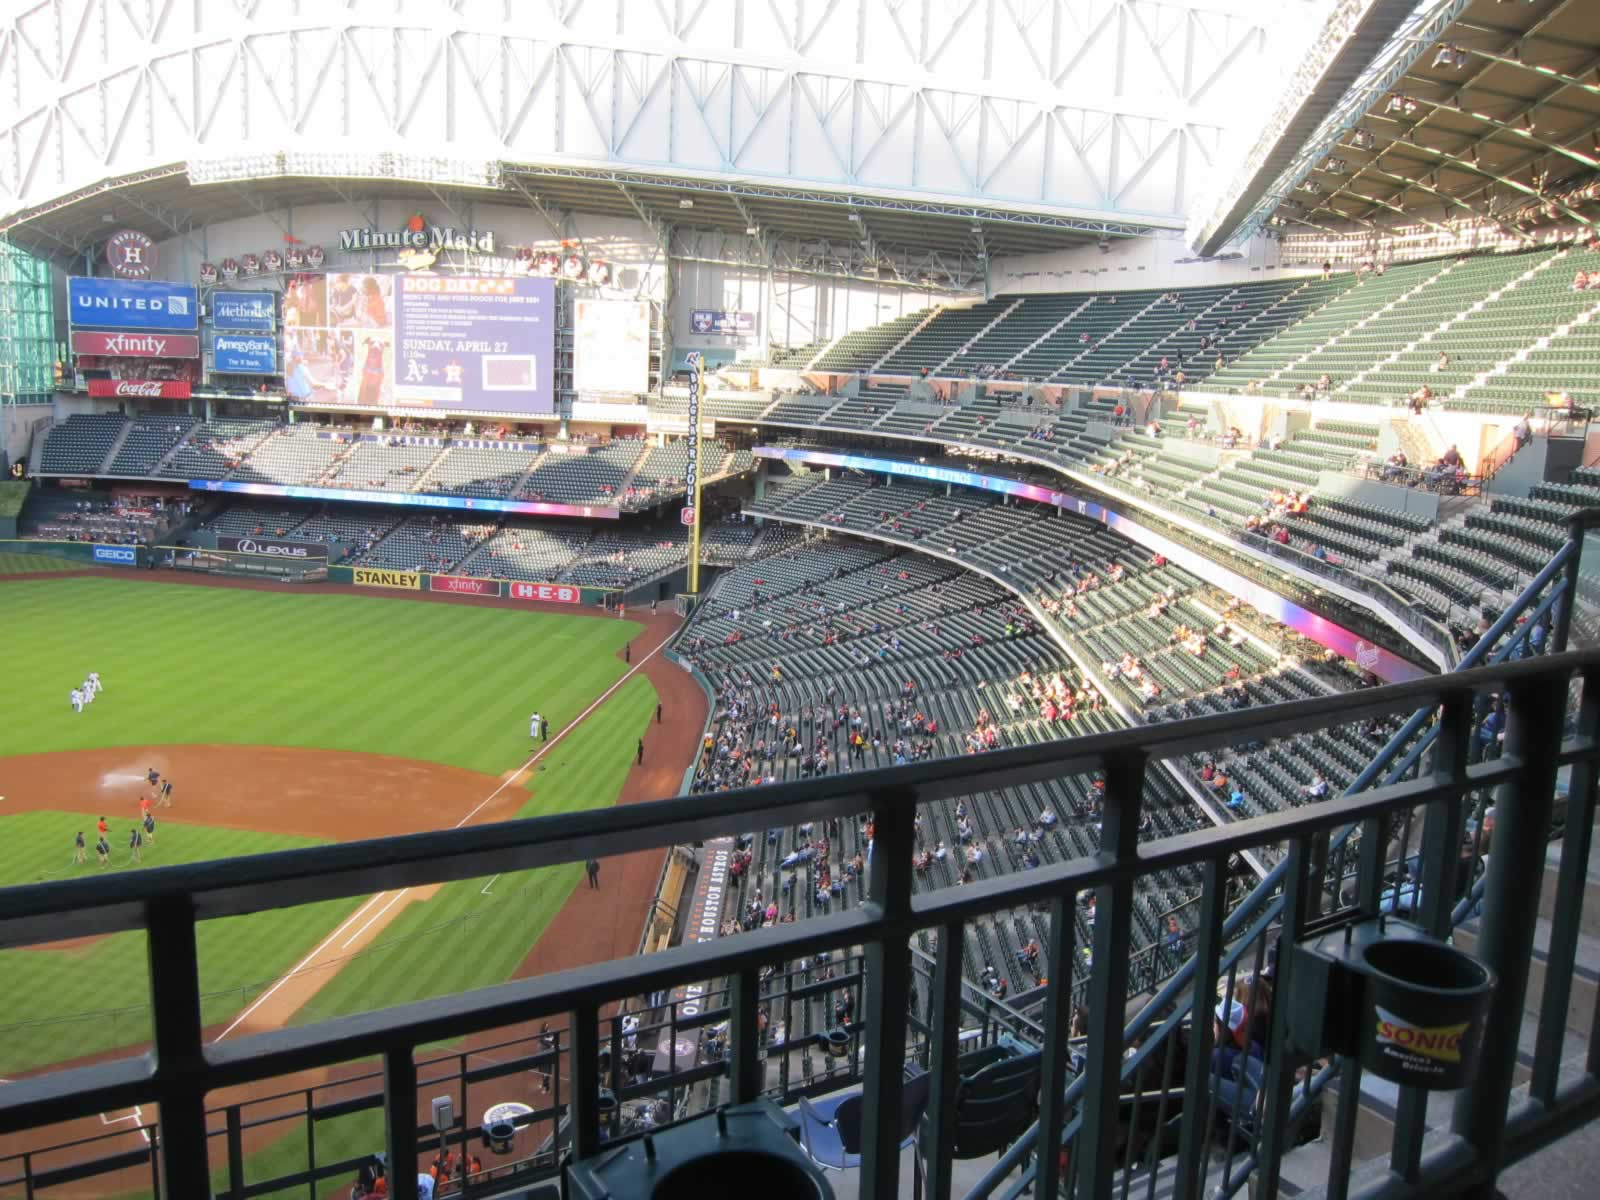 Seat View for Minute Maid Park Section 418, Row 1, Seat 11